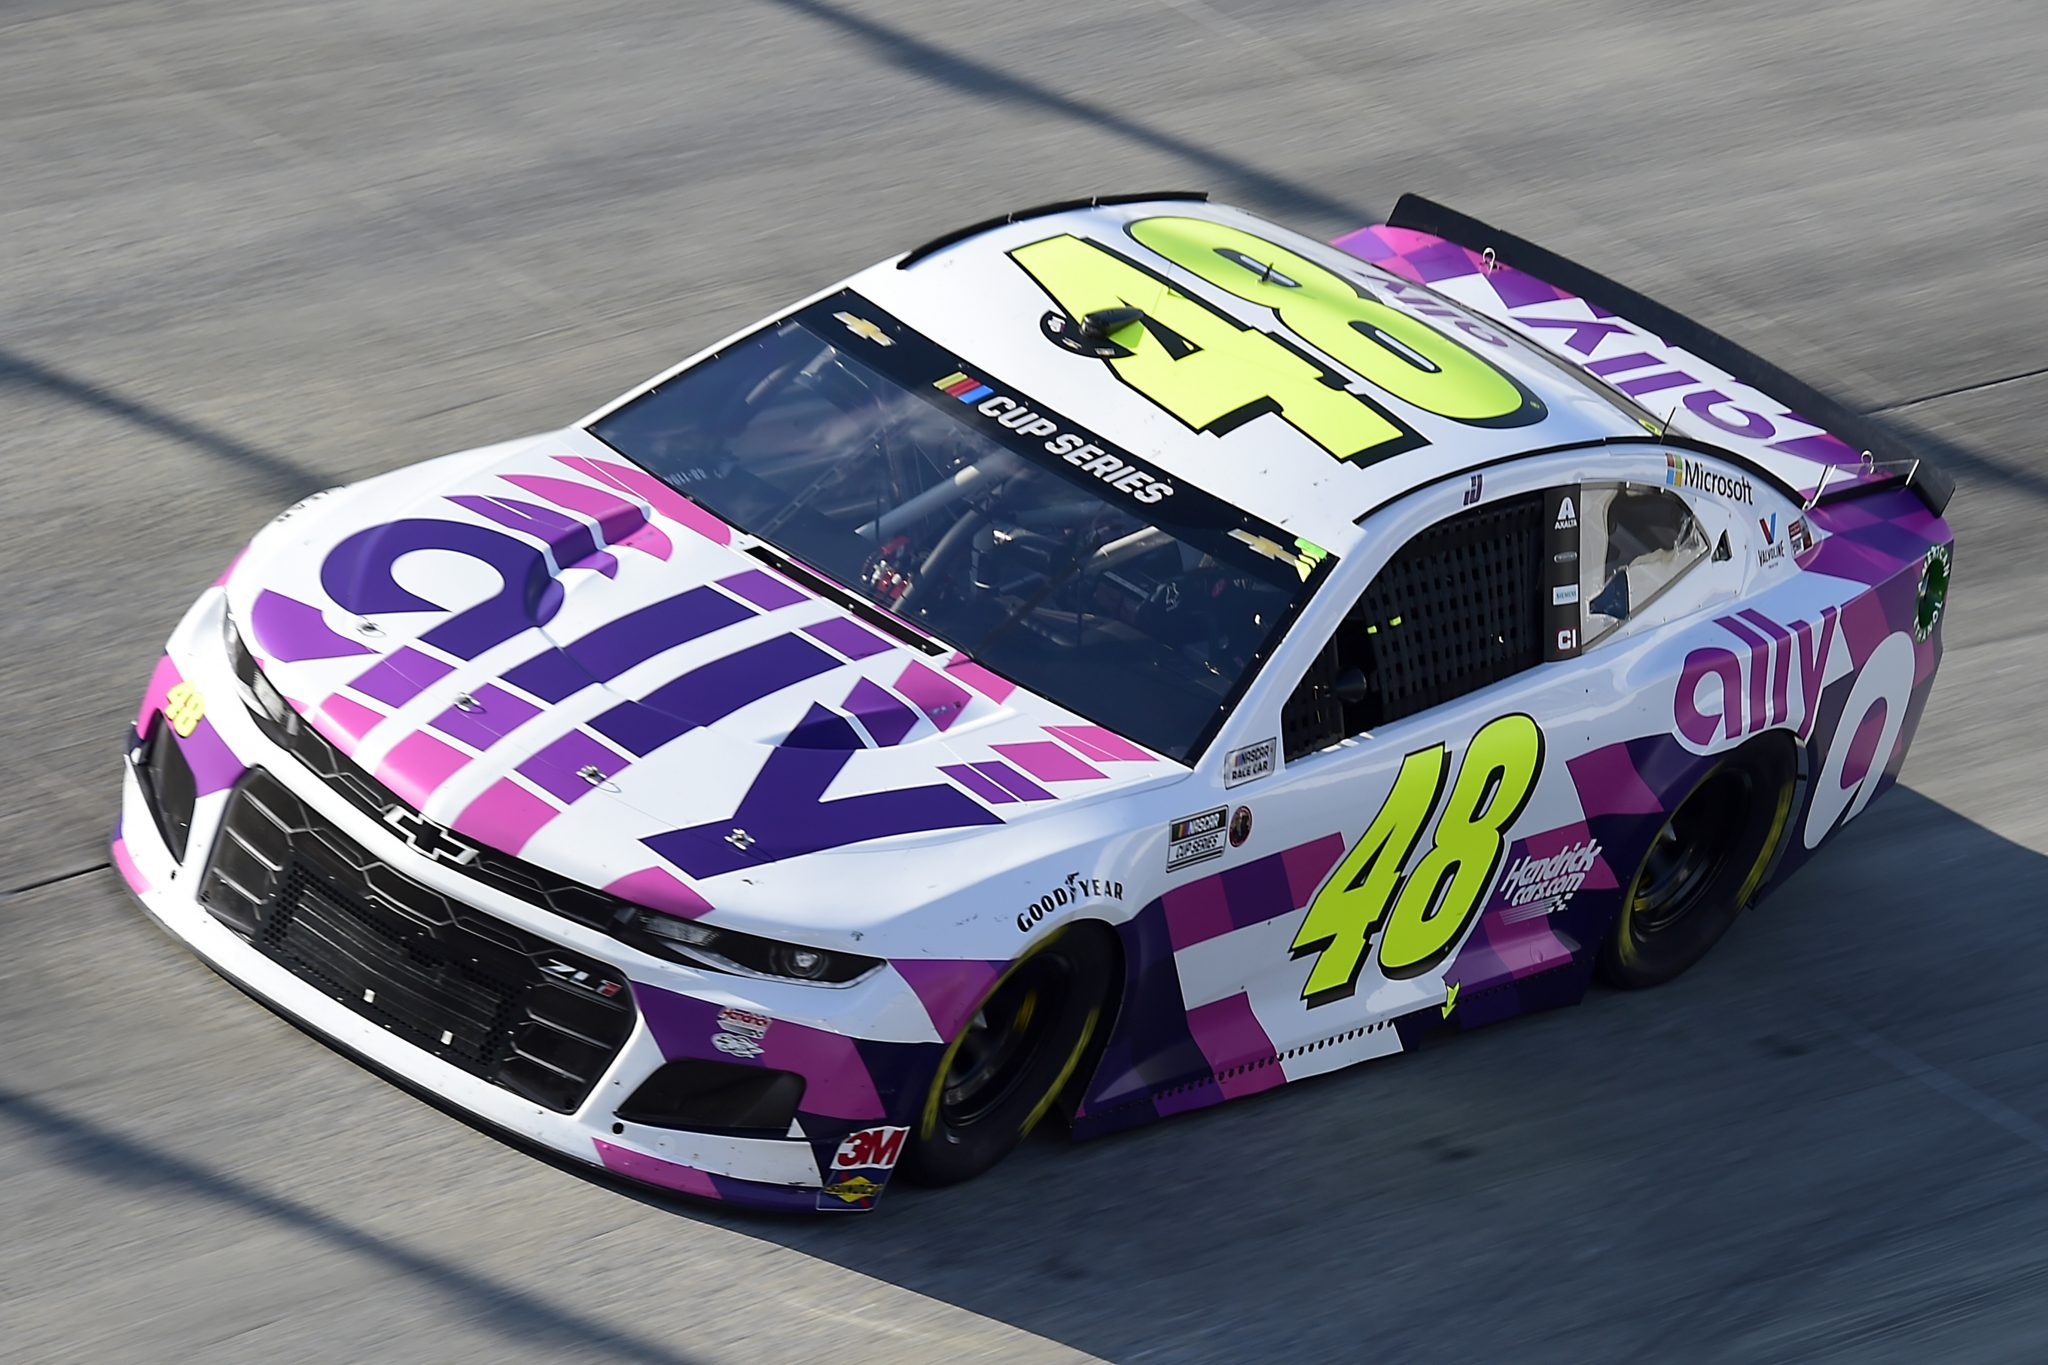 DOVER, DELAWARE - AUGUST 23: Jimmie Johnson, driver of the #48 Ally Chevrolet, drives during the NASCAR Cup Series Drydene 311 at Dover International Speedway on August 23, 2020 in Dover, Delaware. (Photo by Jared C. Tilton/Getty Images) | Getty Images